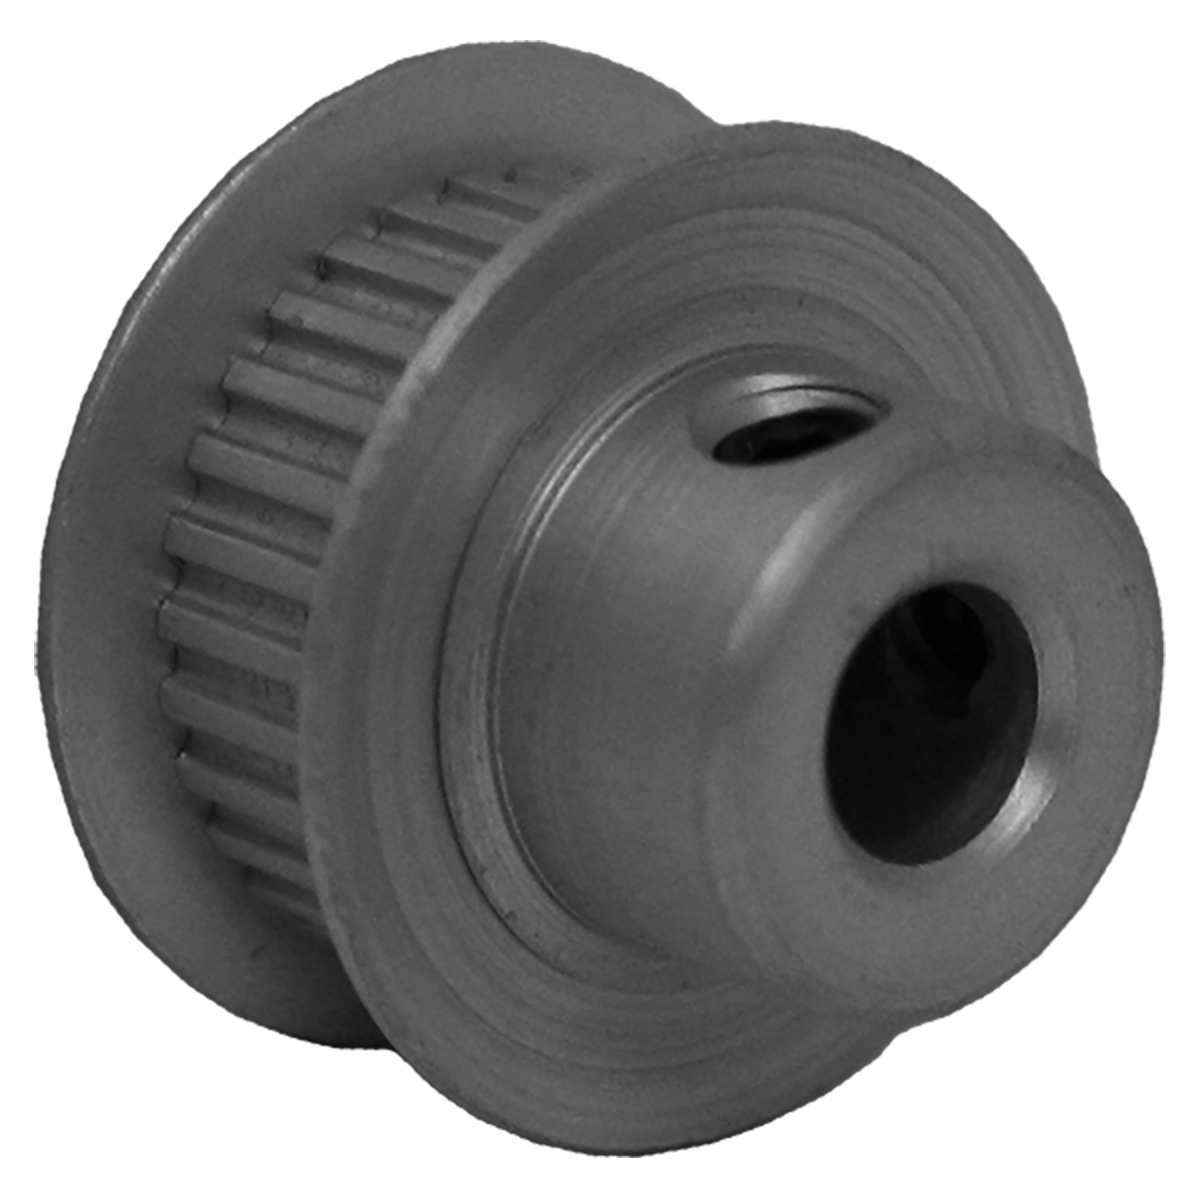 30MP025-6FA3 - Aluminum Imperial Pitch Pulleys